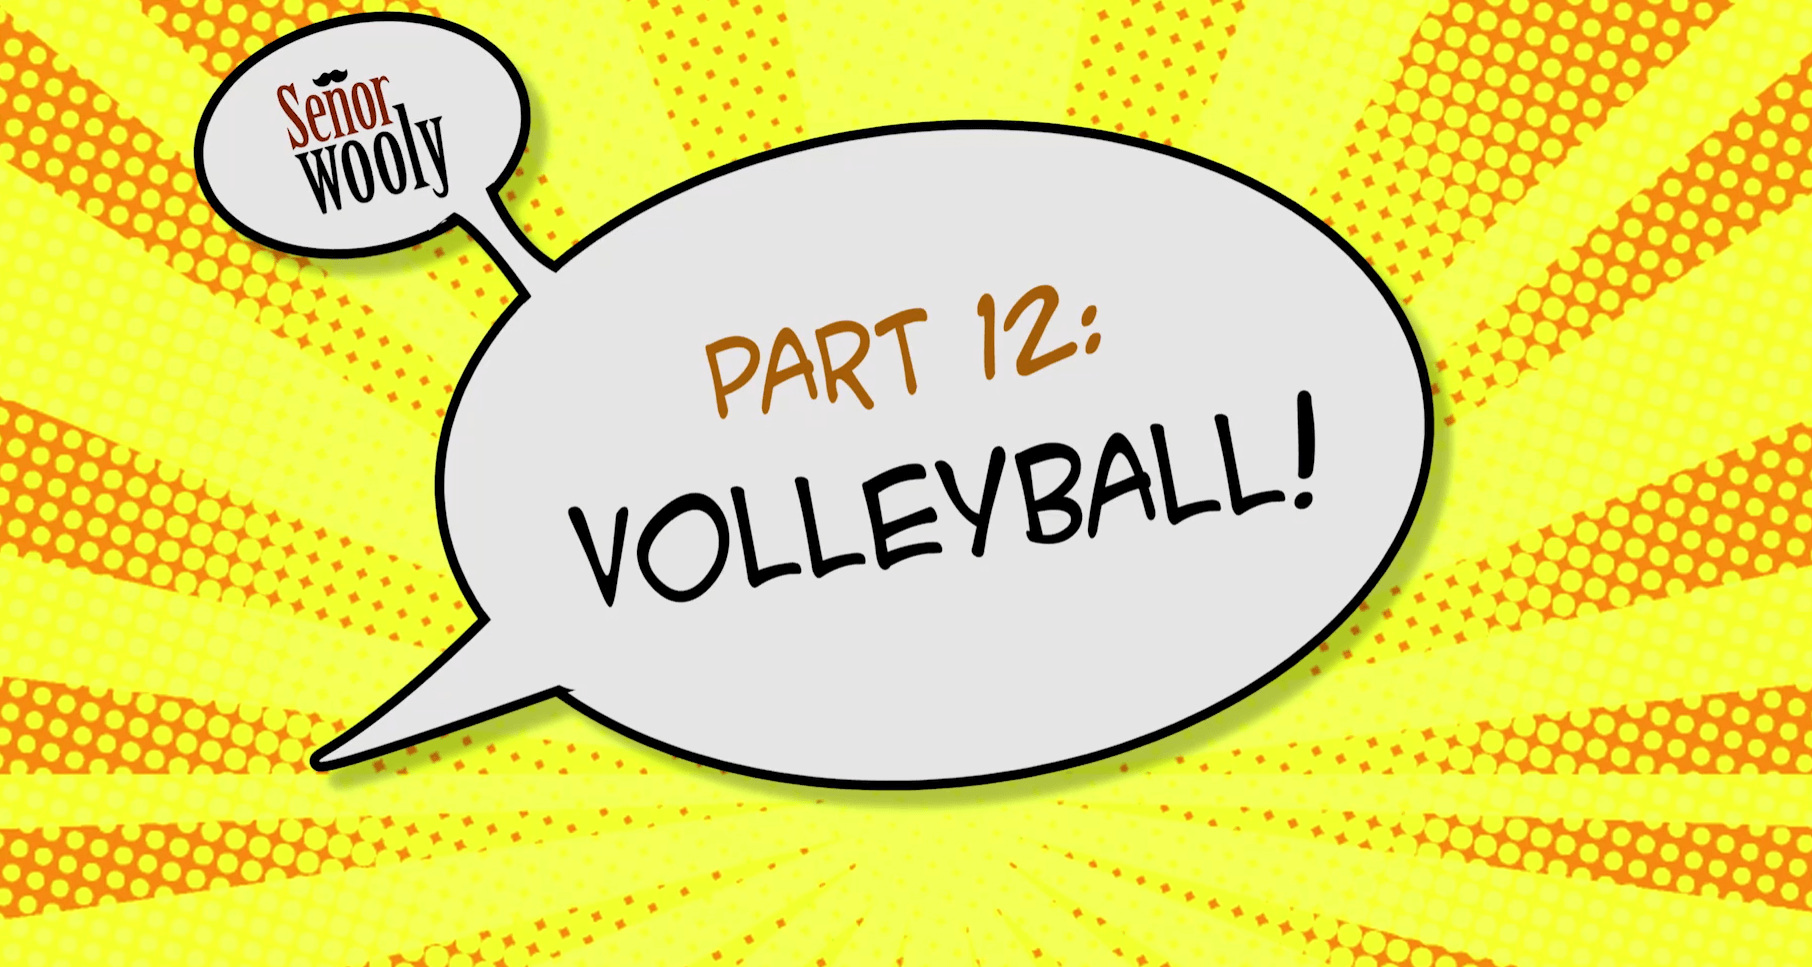 Part 12 - Volleyball!